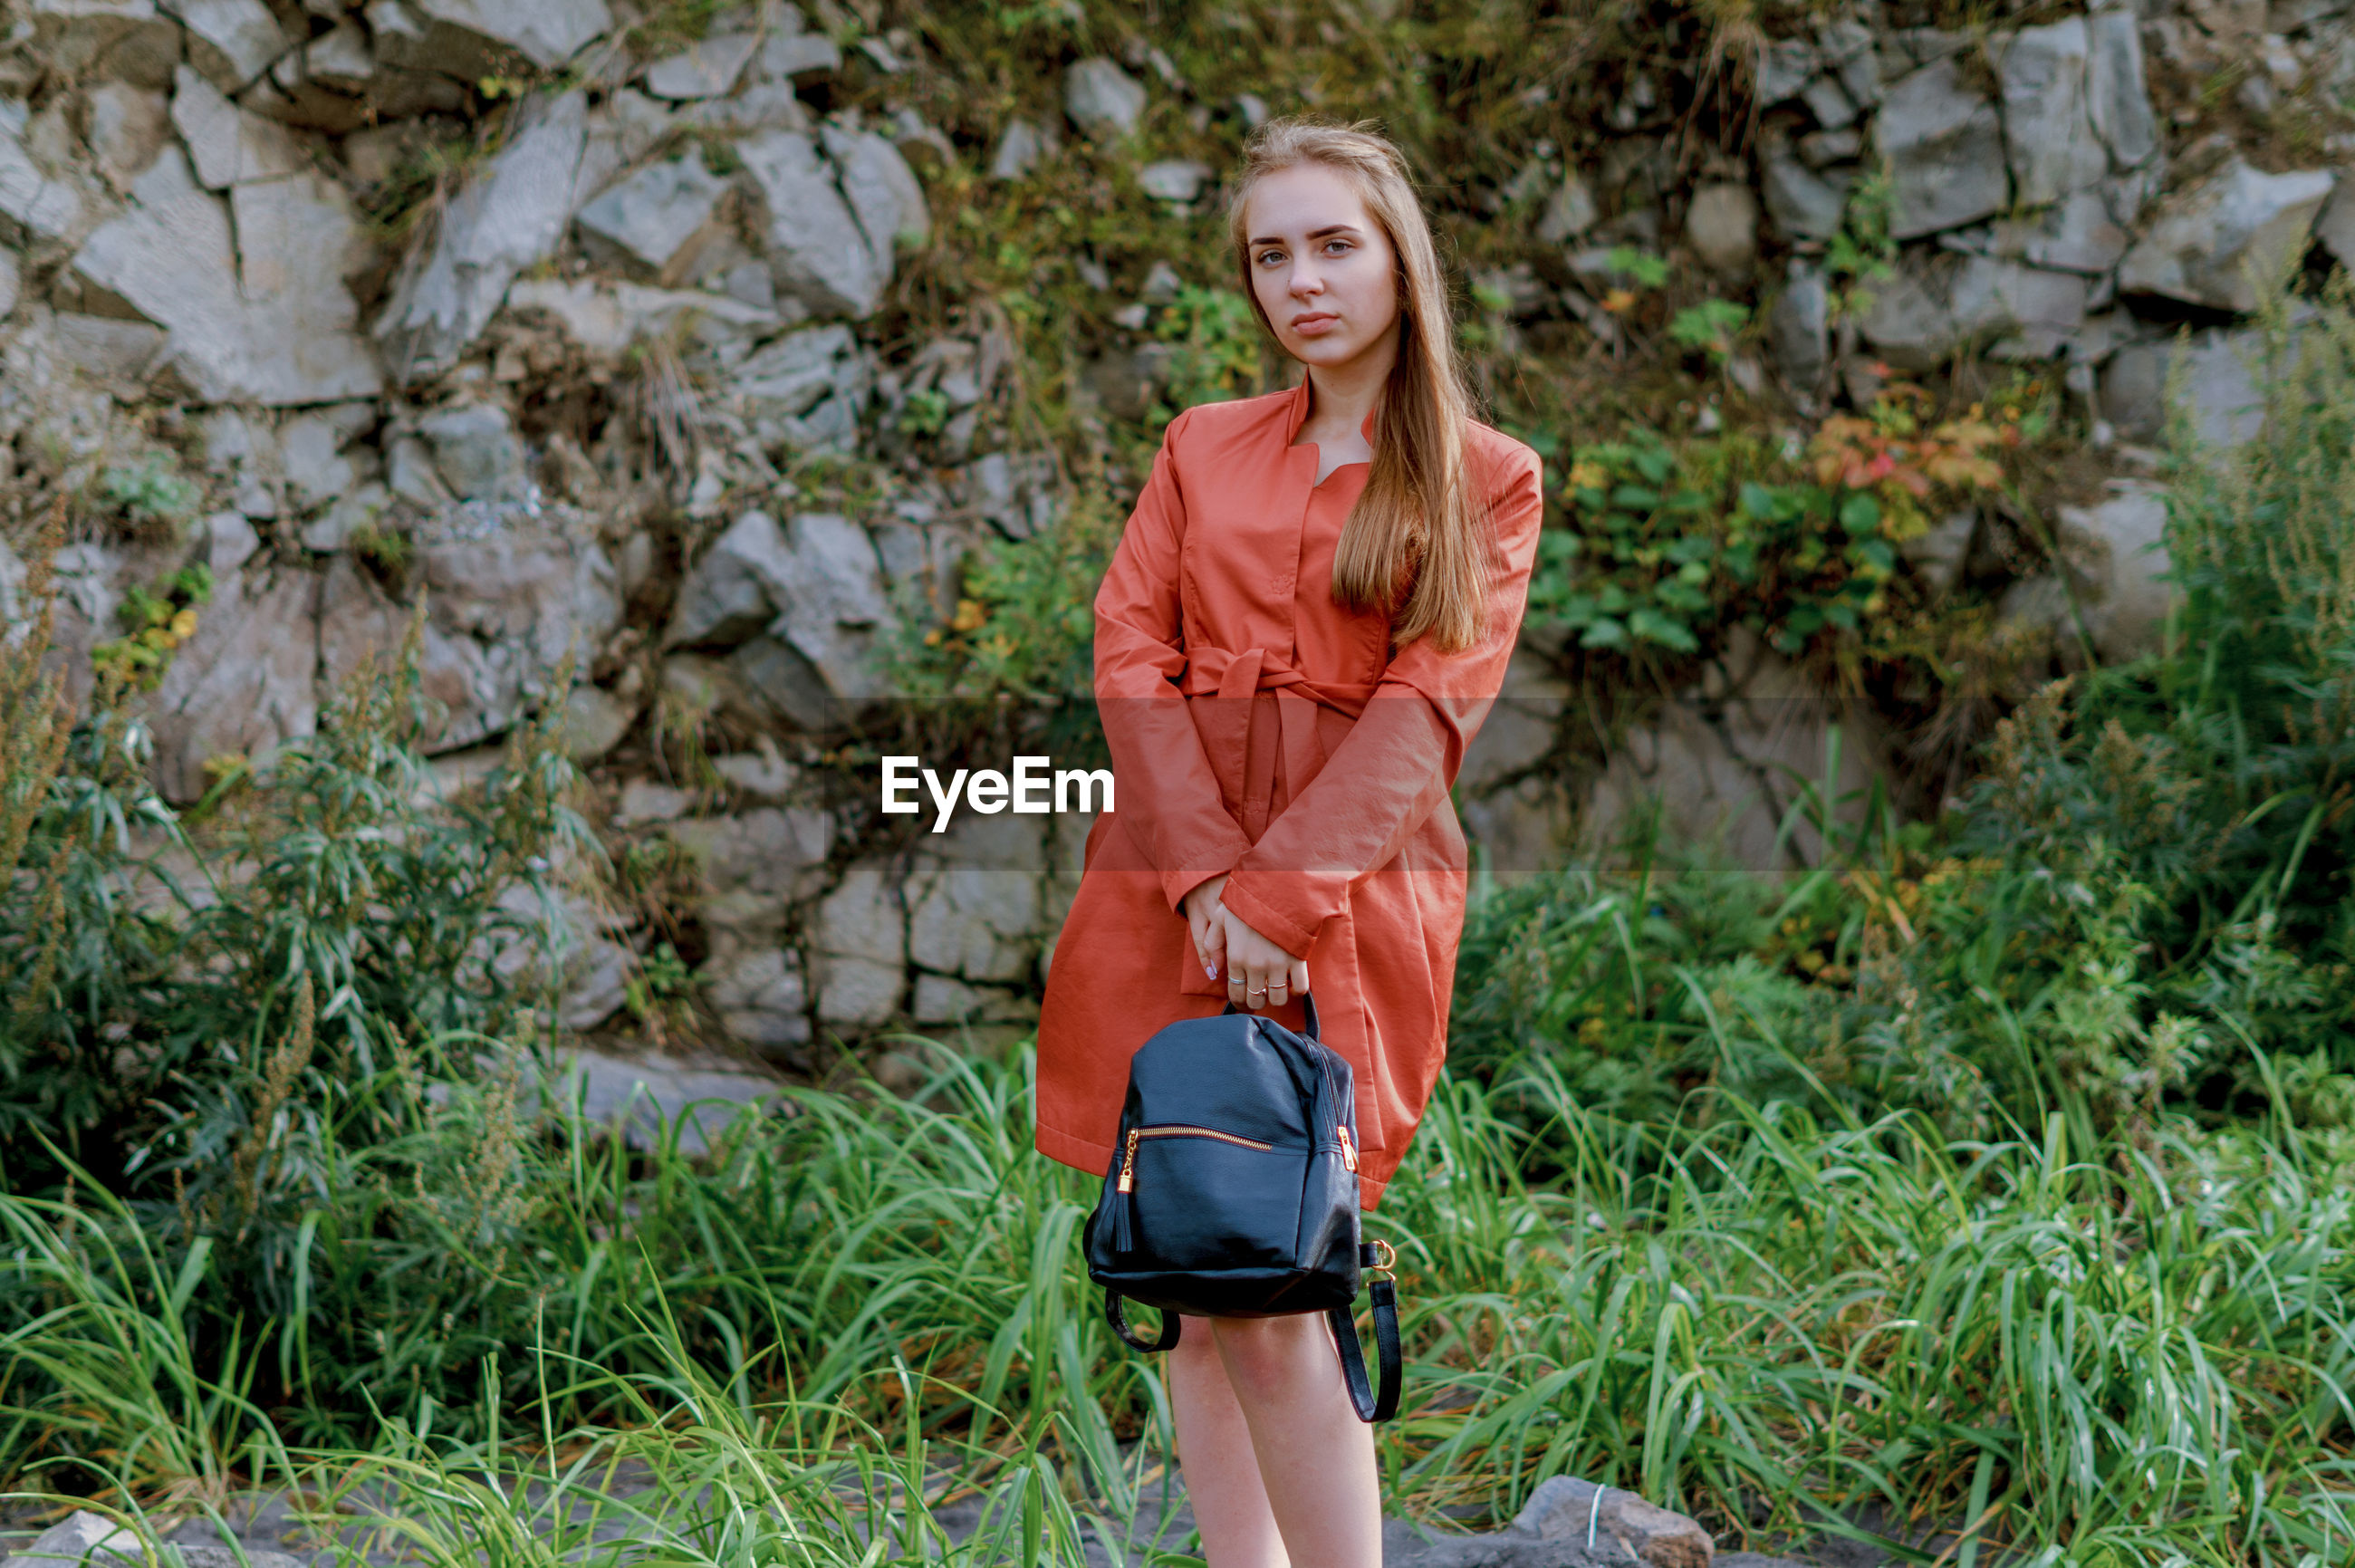 Portrait of young woman holding bag while standing on grassy field